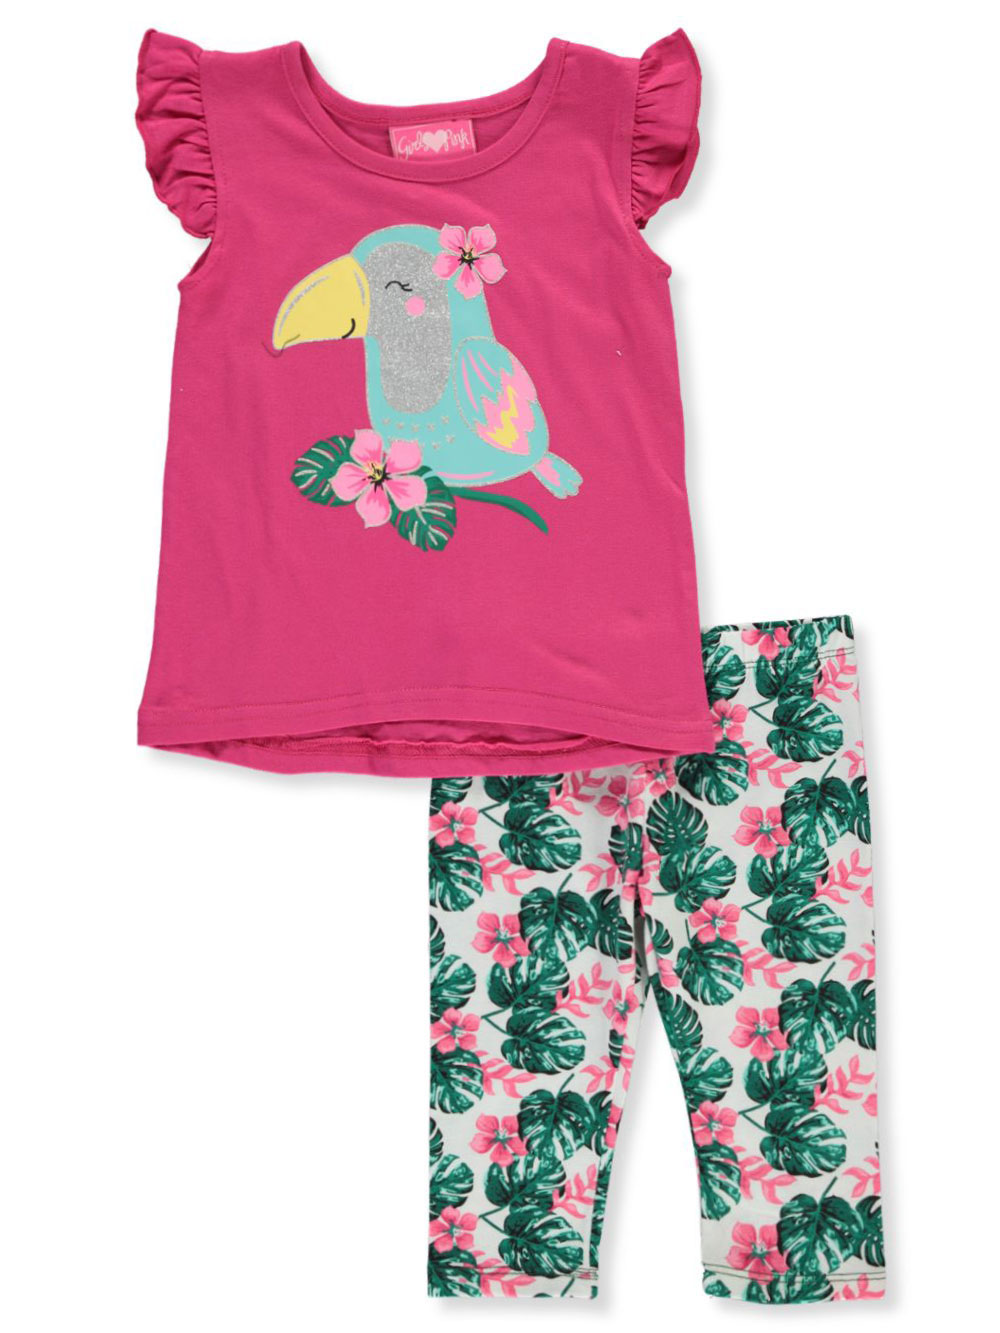 Girls Pink Pant Sets